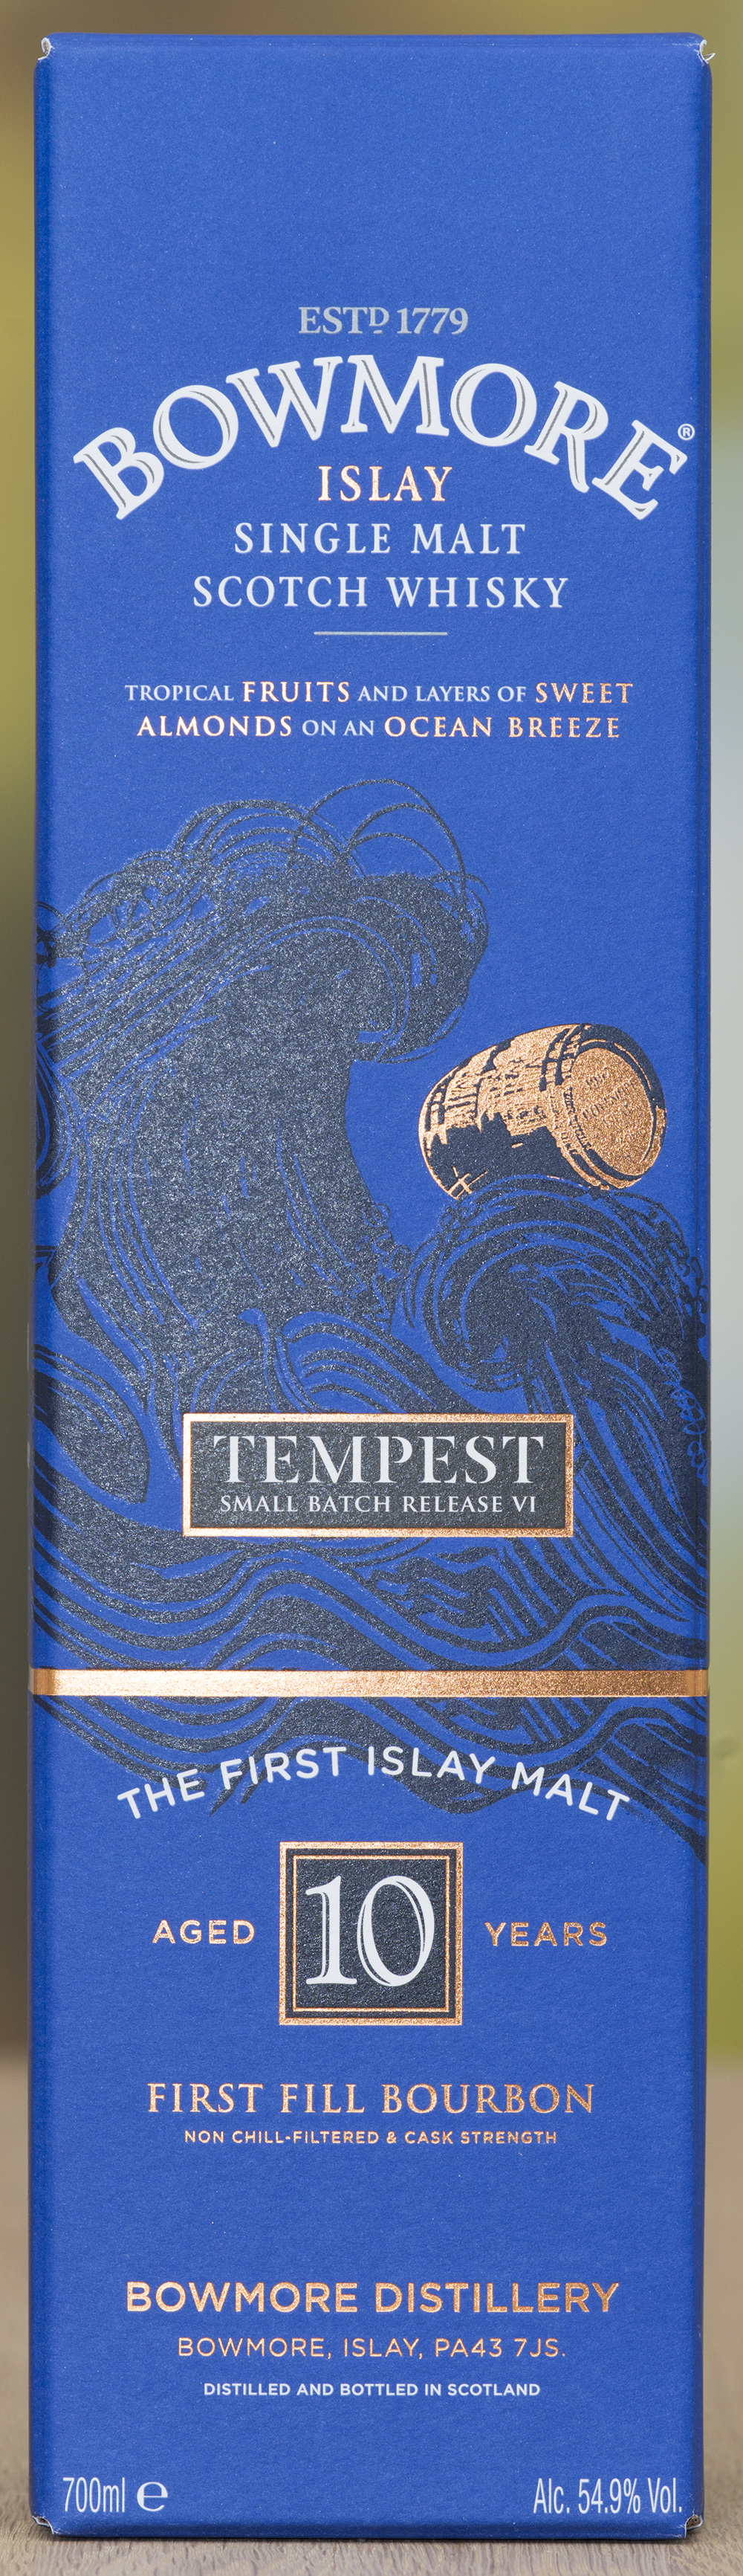 Billede: DSC_9869 - Tempest batch 6 - box front.jpg